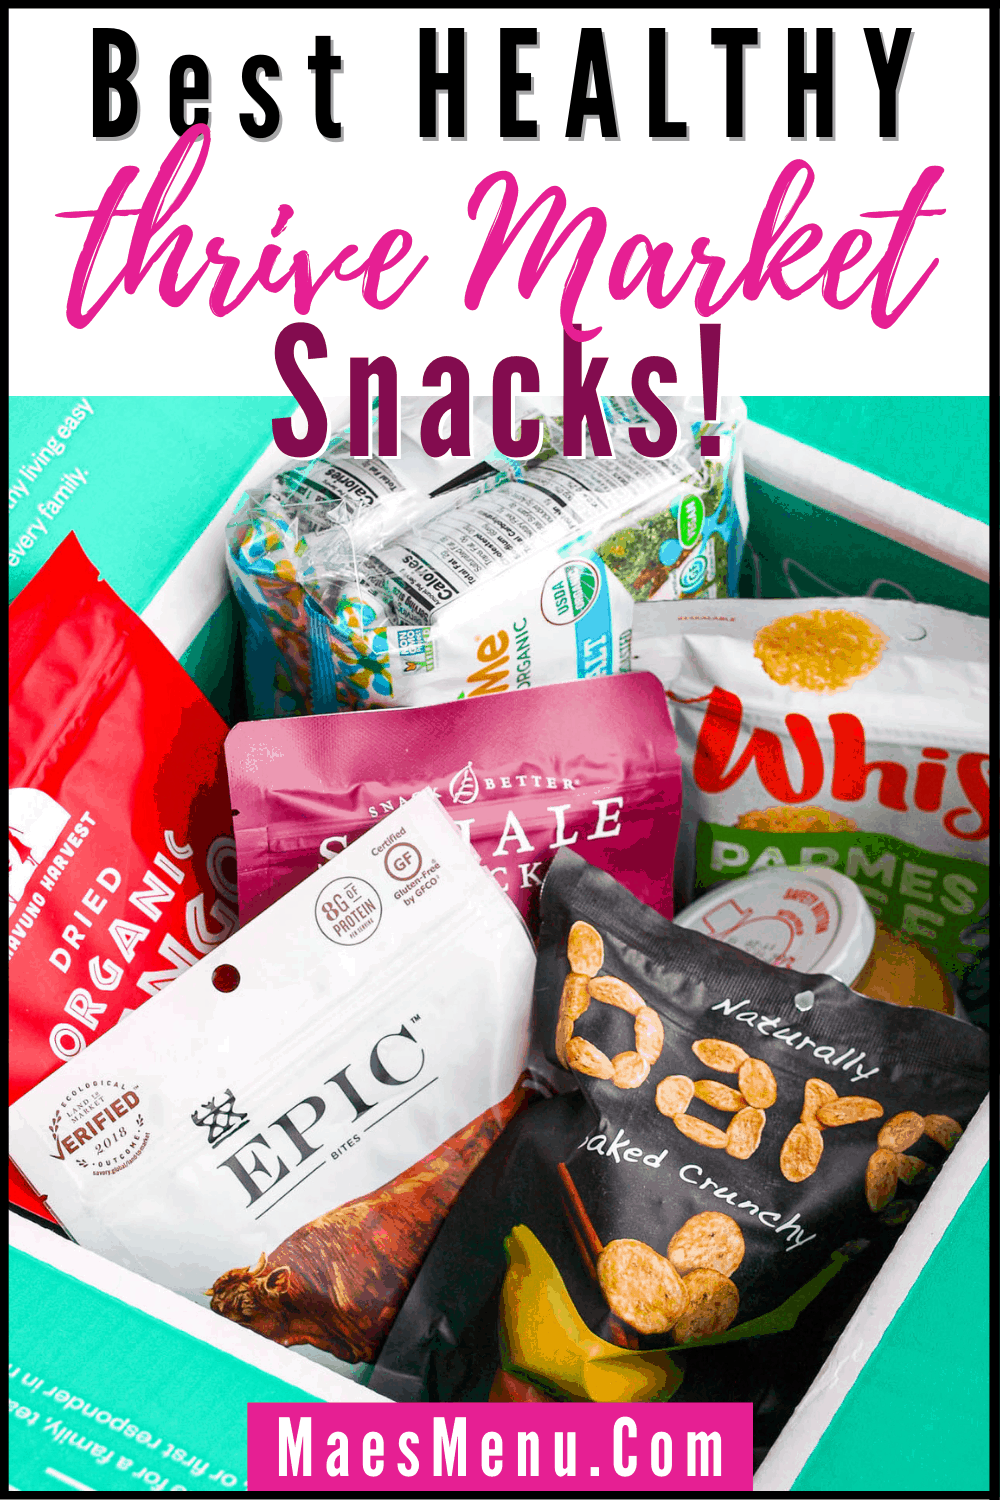 A pinterest pin for Thrive Market's best healthy snacks with a photo of a thrive market box full of healthy snacks